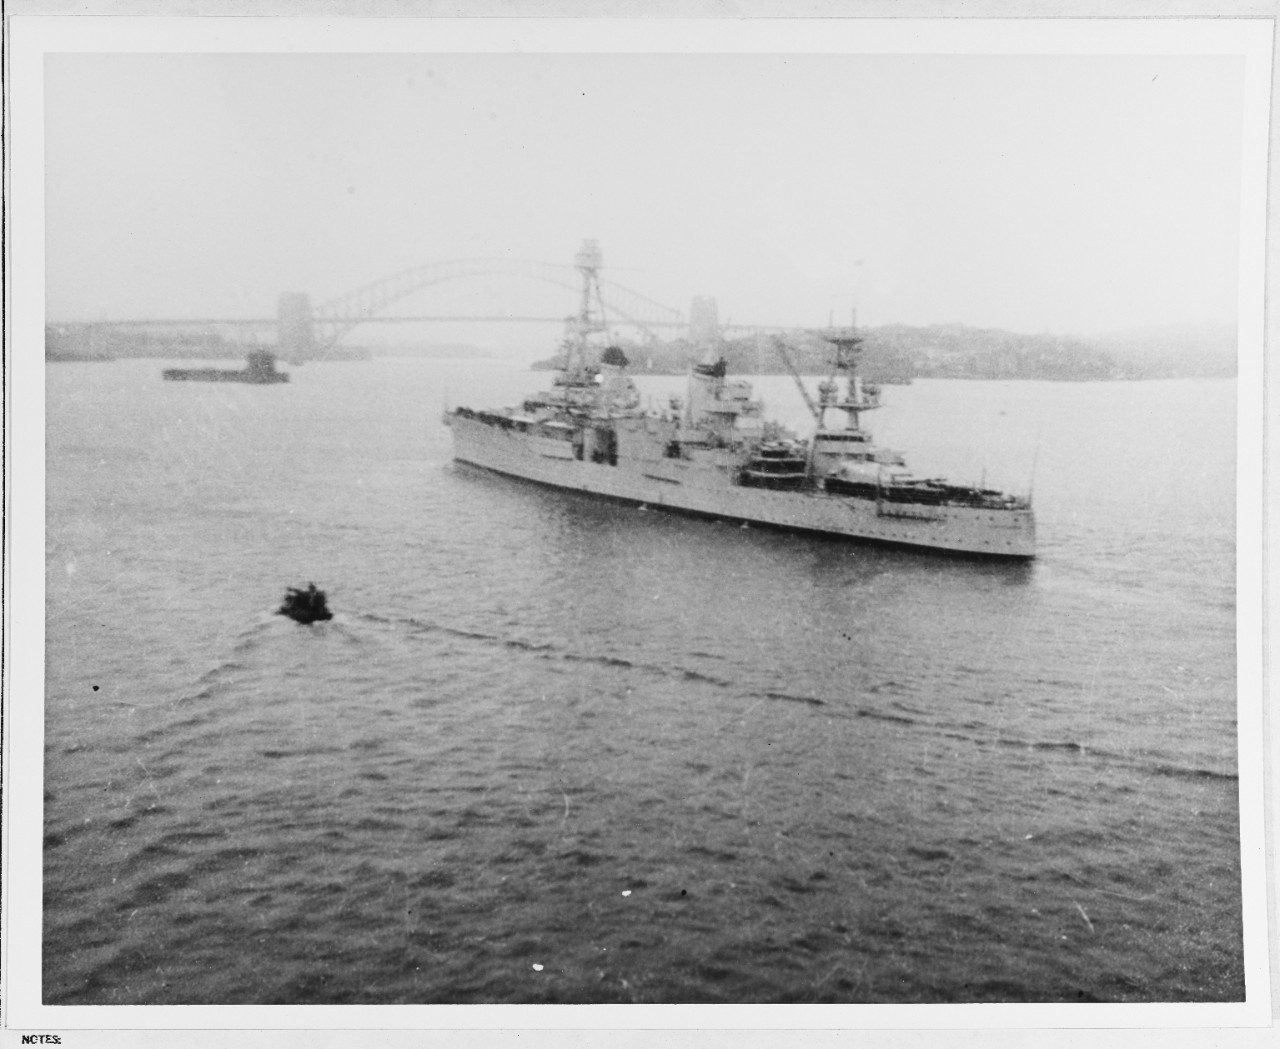 Famed Sydney Harbour Bridge looms through the haze as Chicago enters Sydney, Australia, 20 March 1941. (Naval History and Heritage Command Photograph NH 66291)